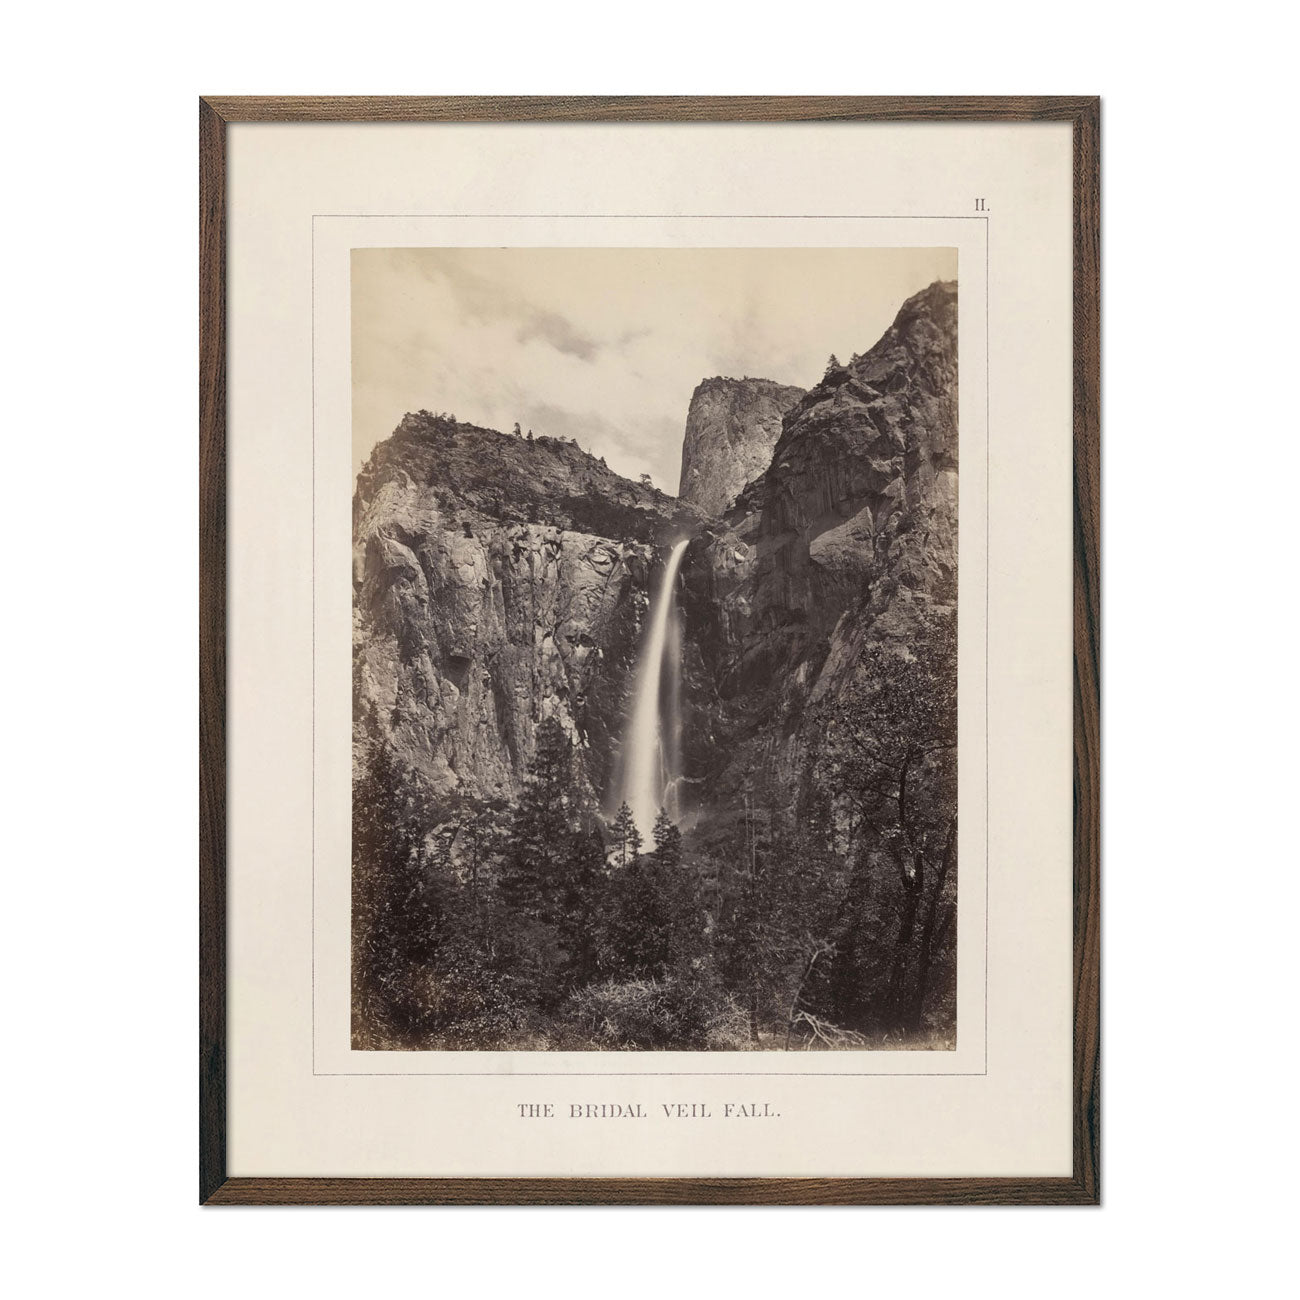 Photograph of Bridal Veil Fall